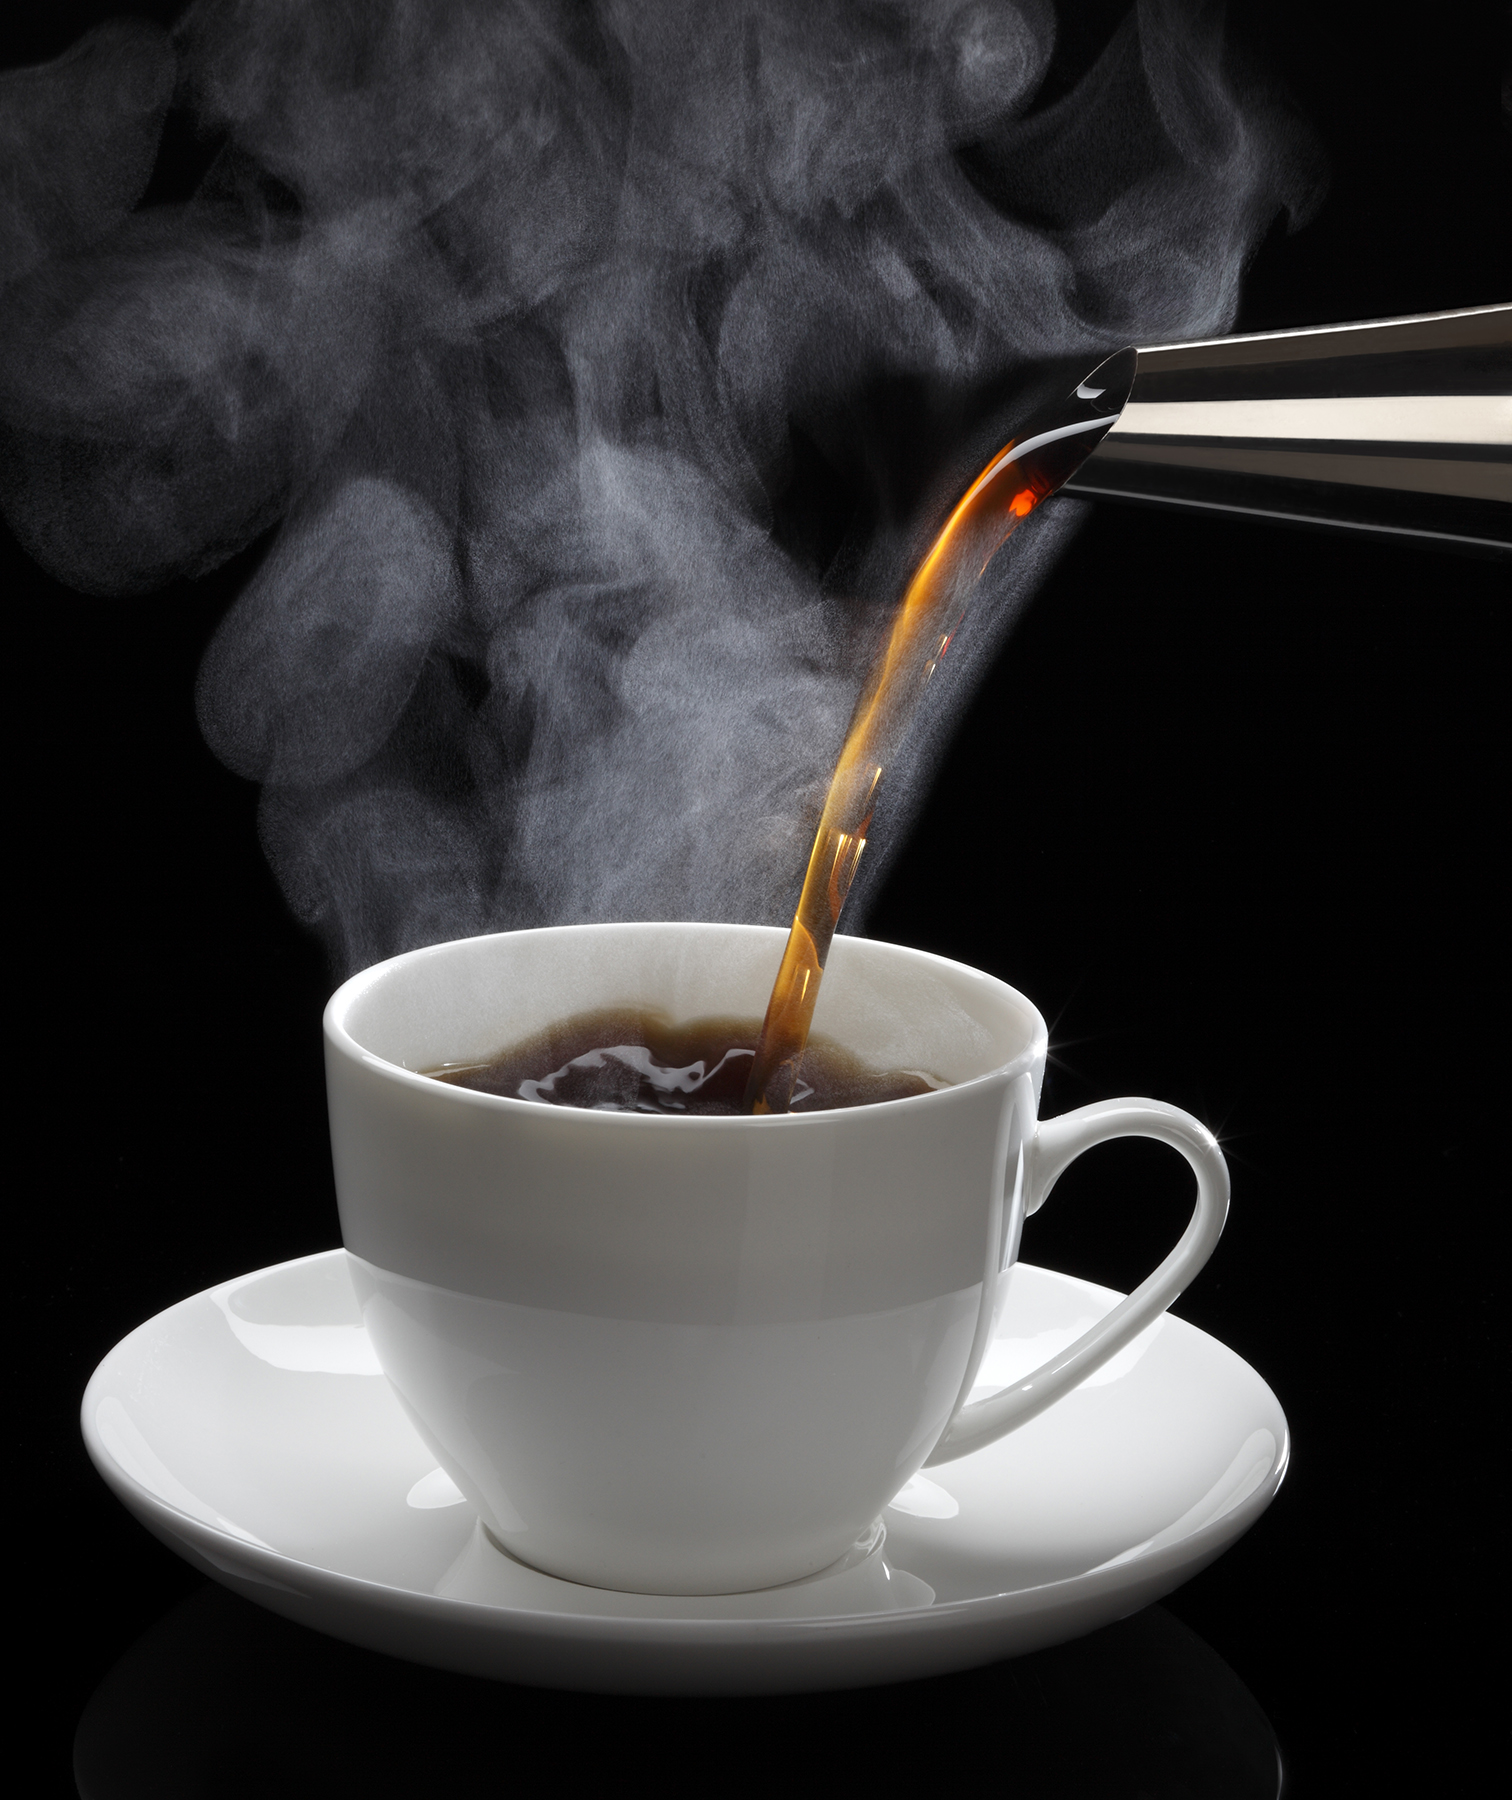 What's in Flavored Coffee Is Actually Disgusting